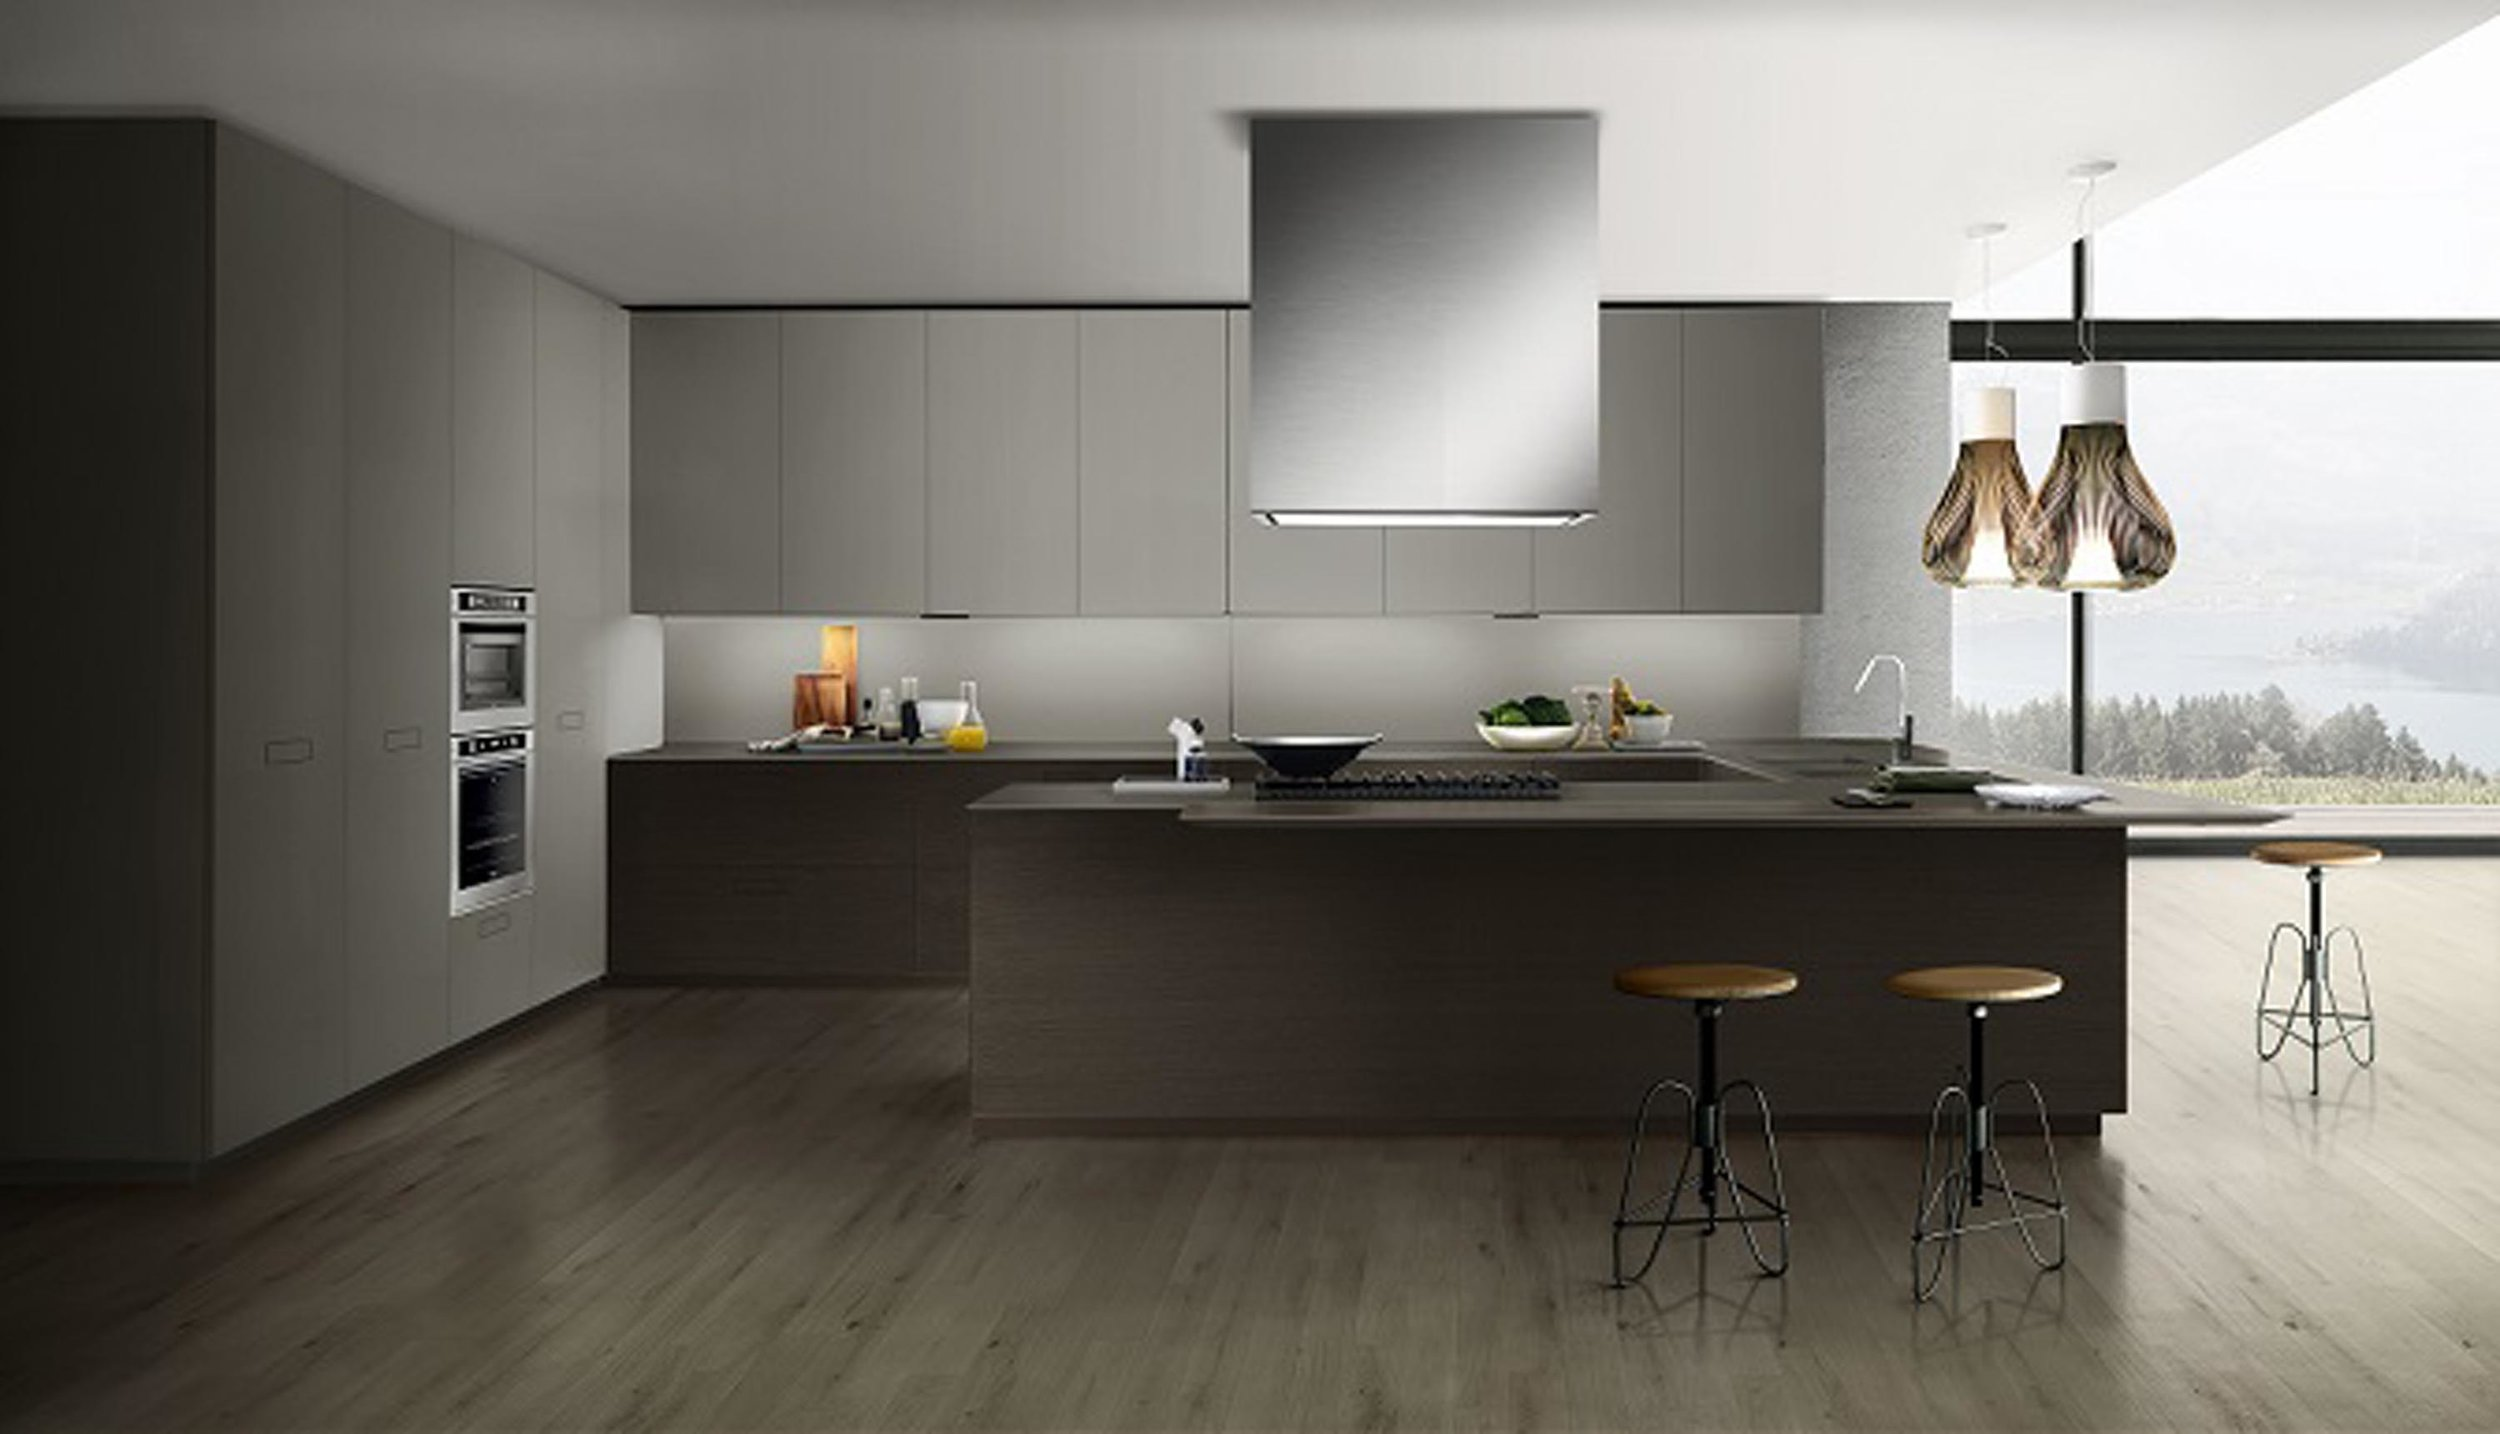 Contemporary style kitchen with counter and two counter stools